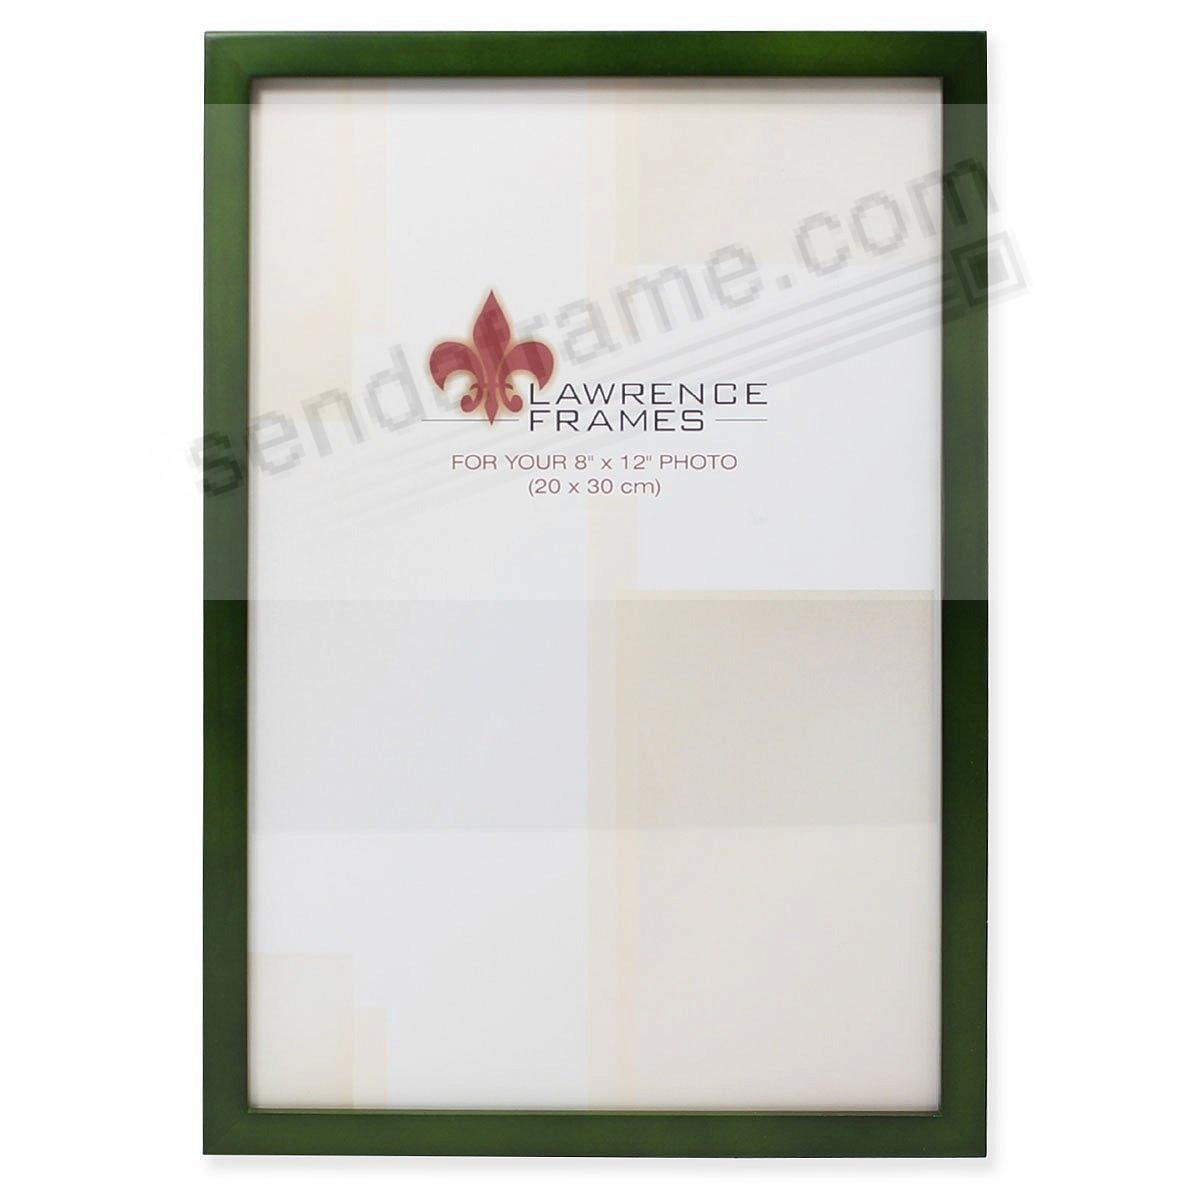 SQUARE CORNER Green Stain classic 8x12 frame by Lawrence Frames ...